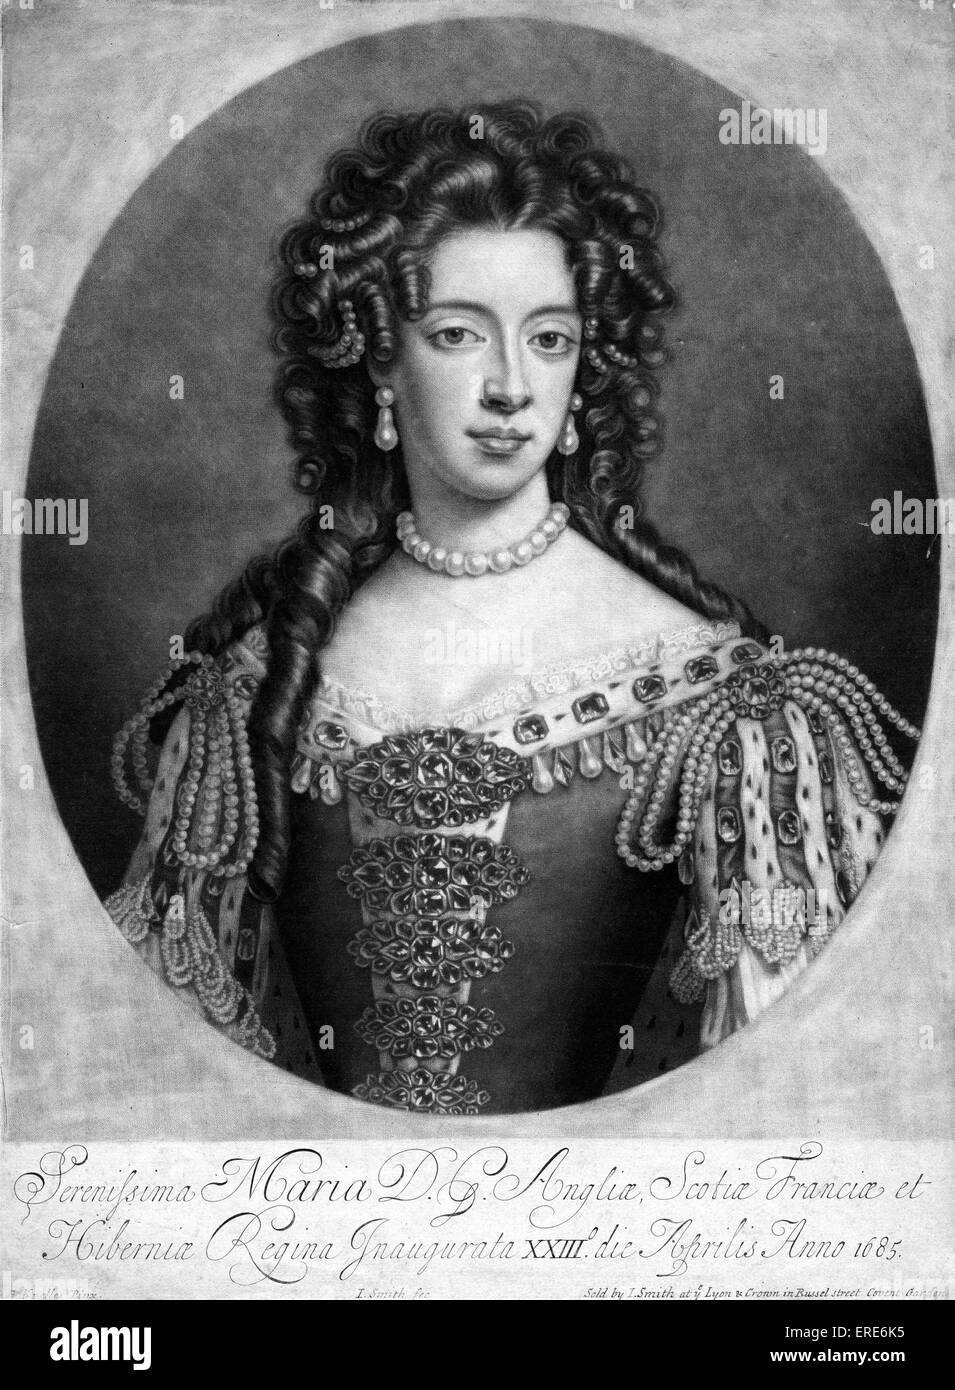 Mary of Modena.   1703. Engraving by J. Smith after painting by G. Kneller. Sold by J. Smith at ye Lyon & Crown - Stock Image